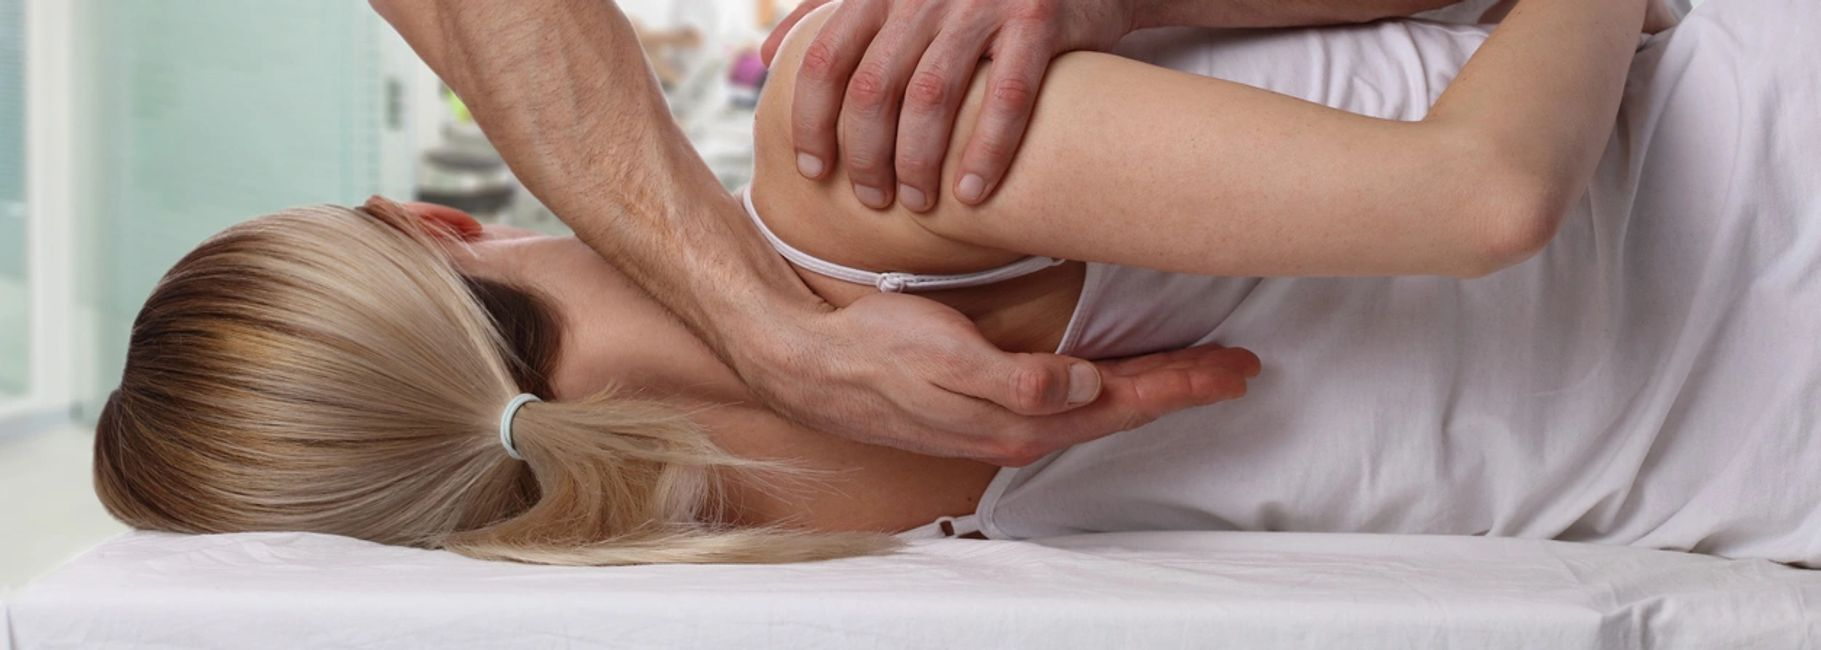 Woman Receiving Chiropractic Treatment